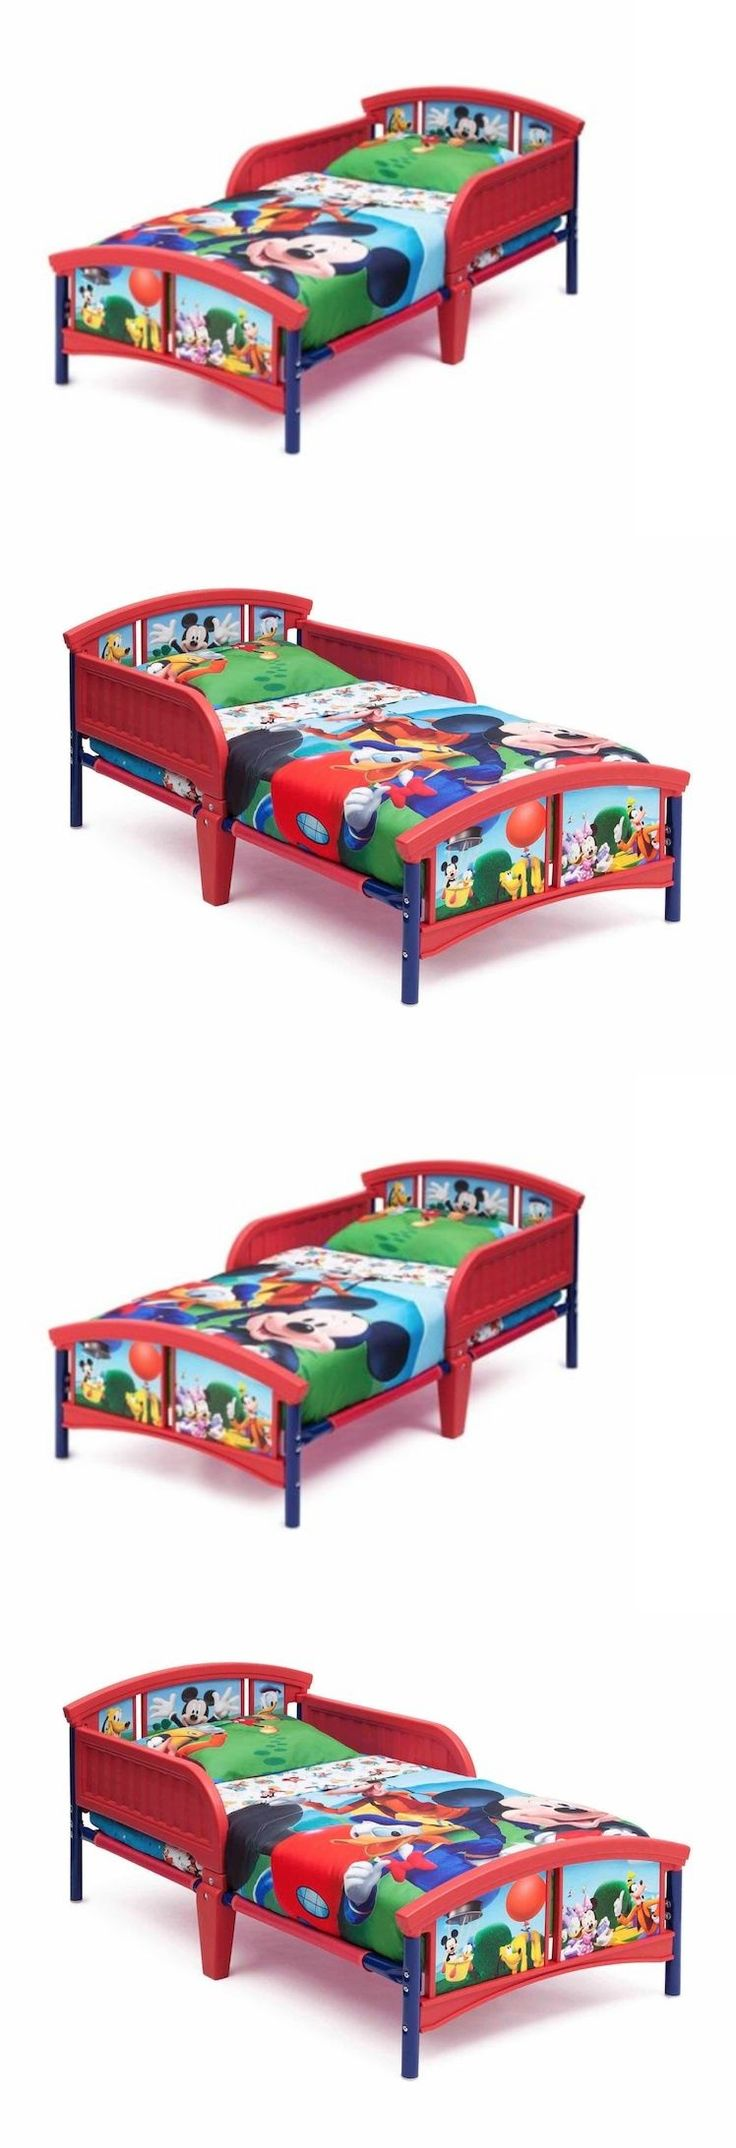 Kids Furniture: Disney Mickey Mouse Toddler Bed Kids Beds With Rails Children Bedroom Furniture BUY IT NOW ONLY: $84.87